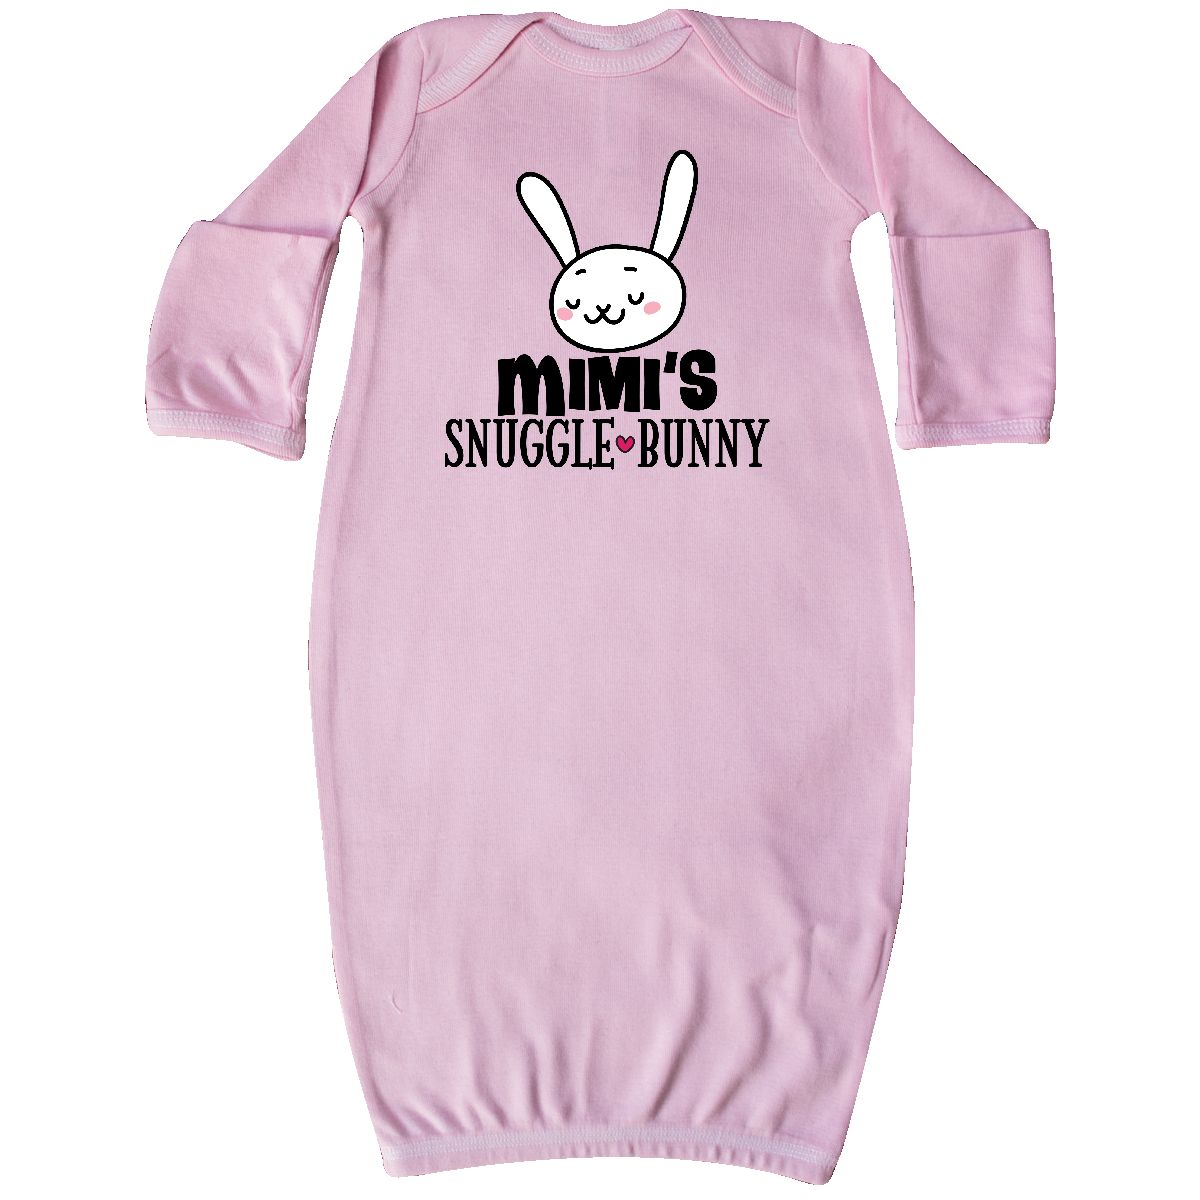 6122767eb inktastic Inktastic Mimi Easter Bunny Outfit Newborn Layette Gift From Rabbit  Clothing Hws